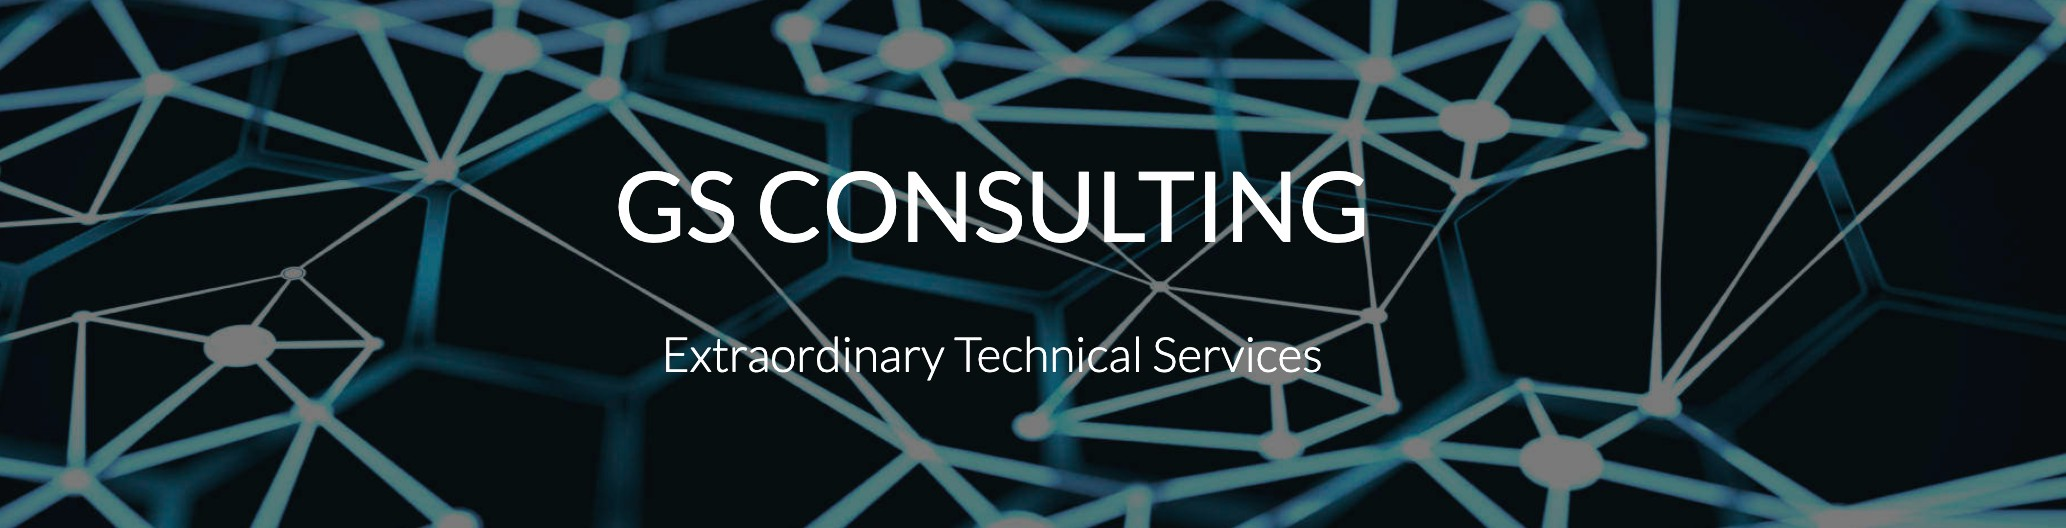 Gs Consulting Linkedin